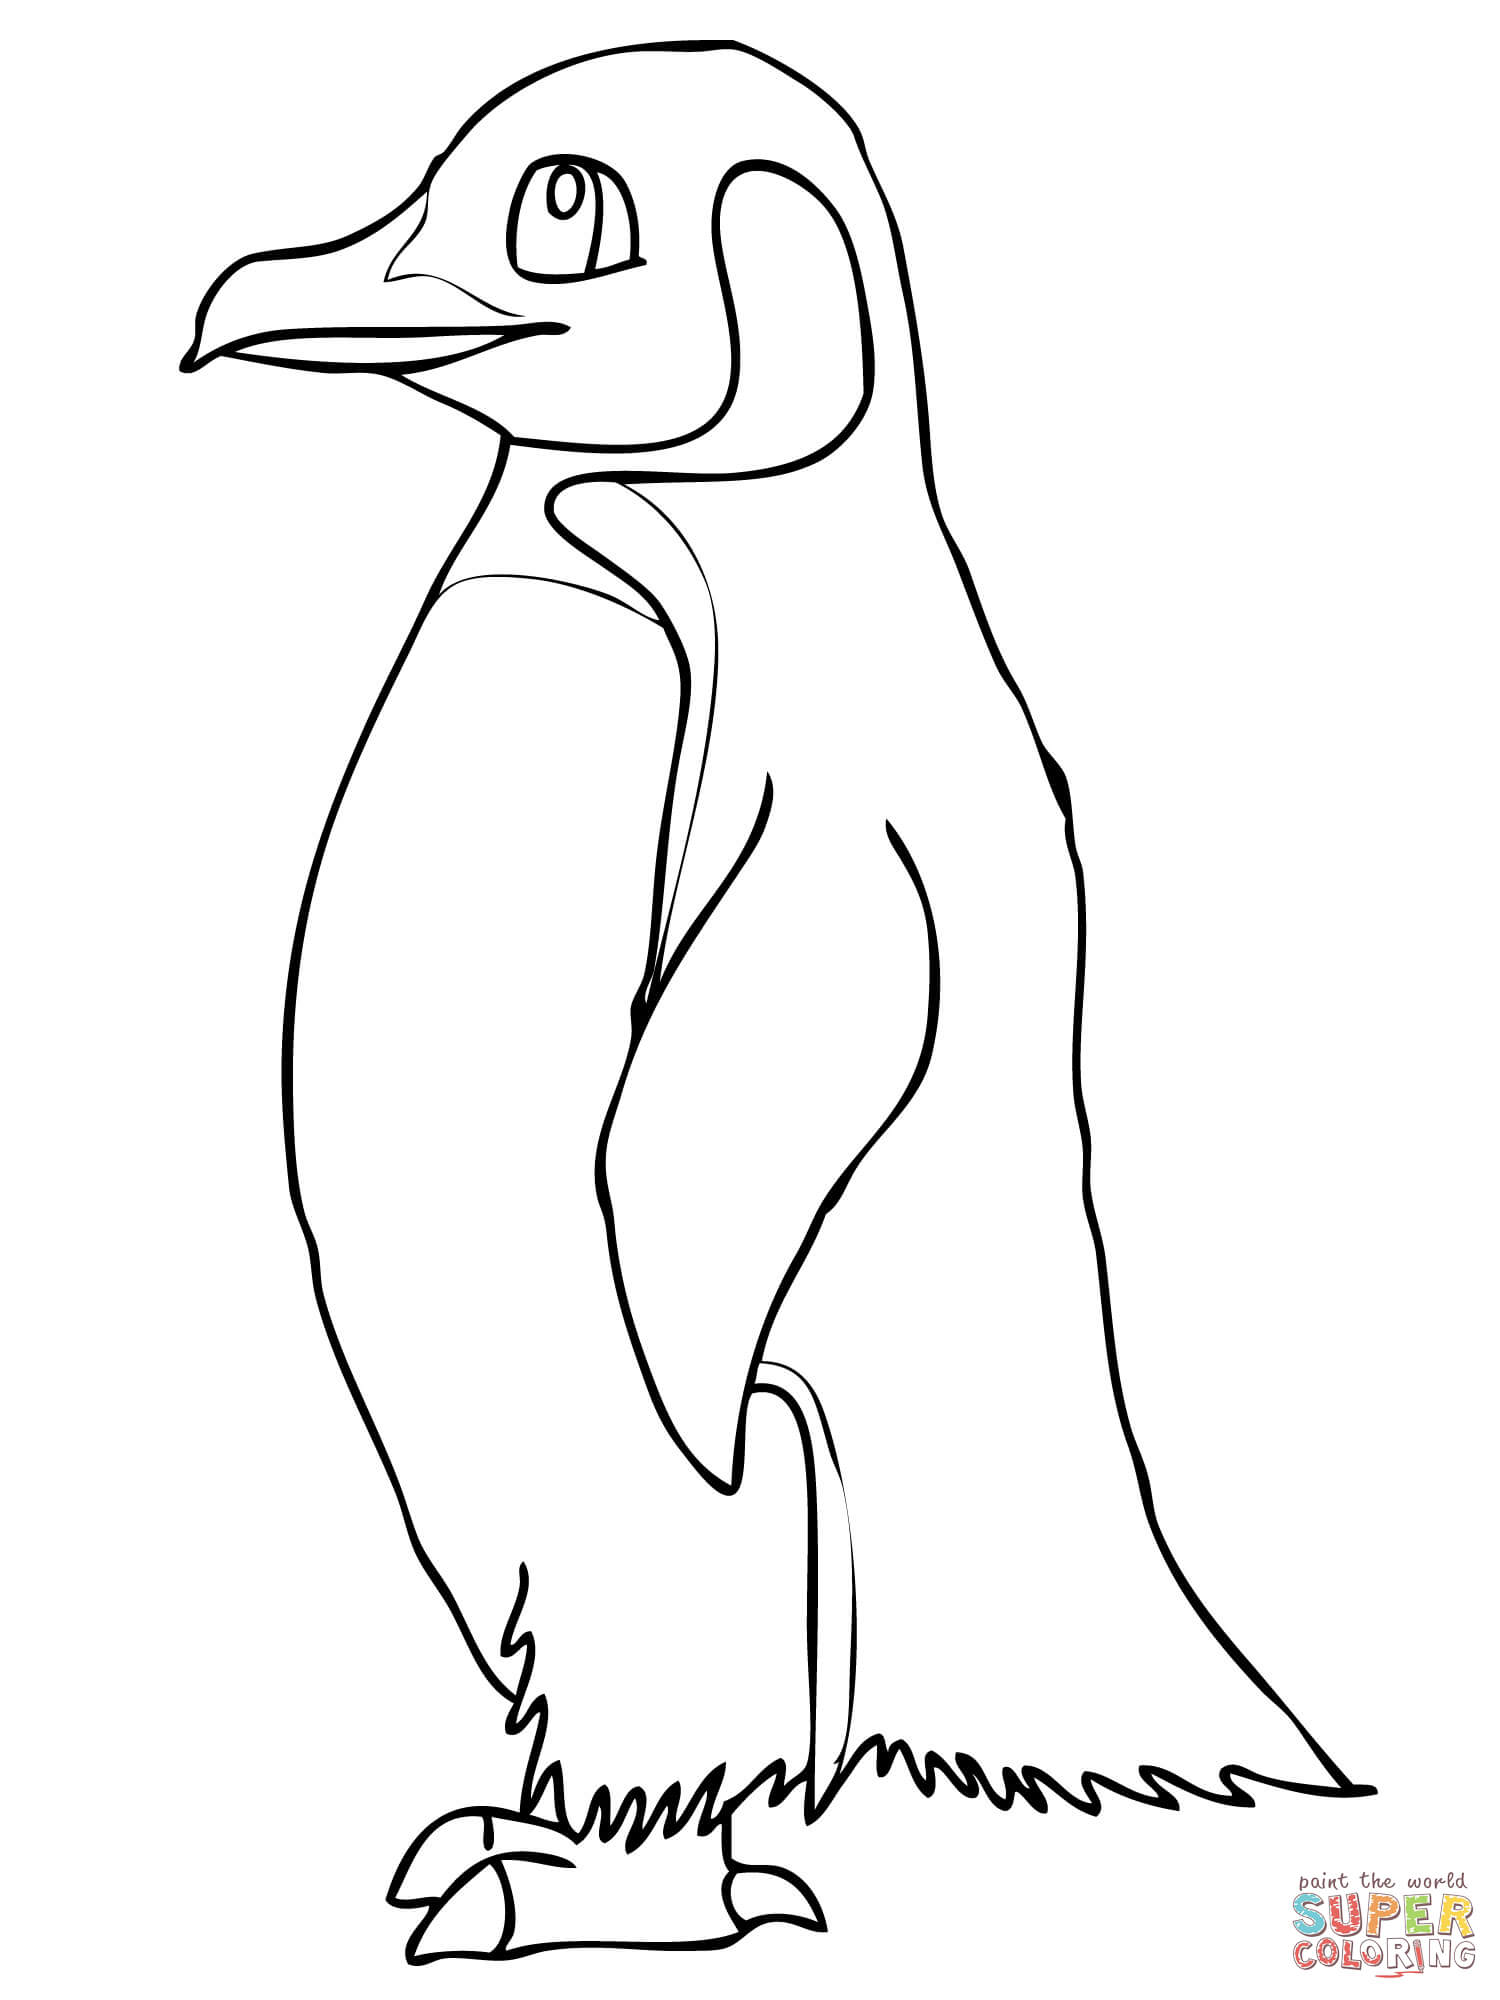 King Emperor Penguins coloring #17, Download drawings